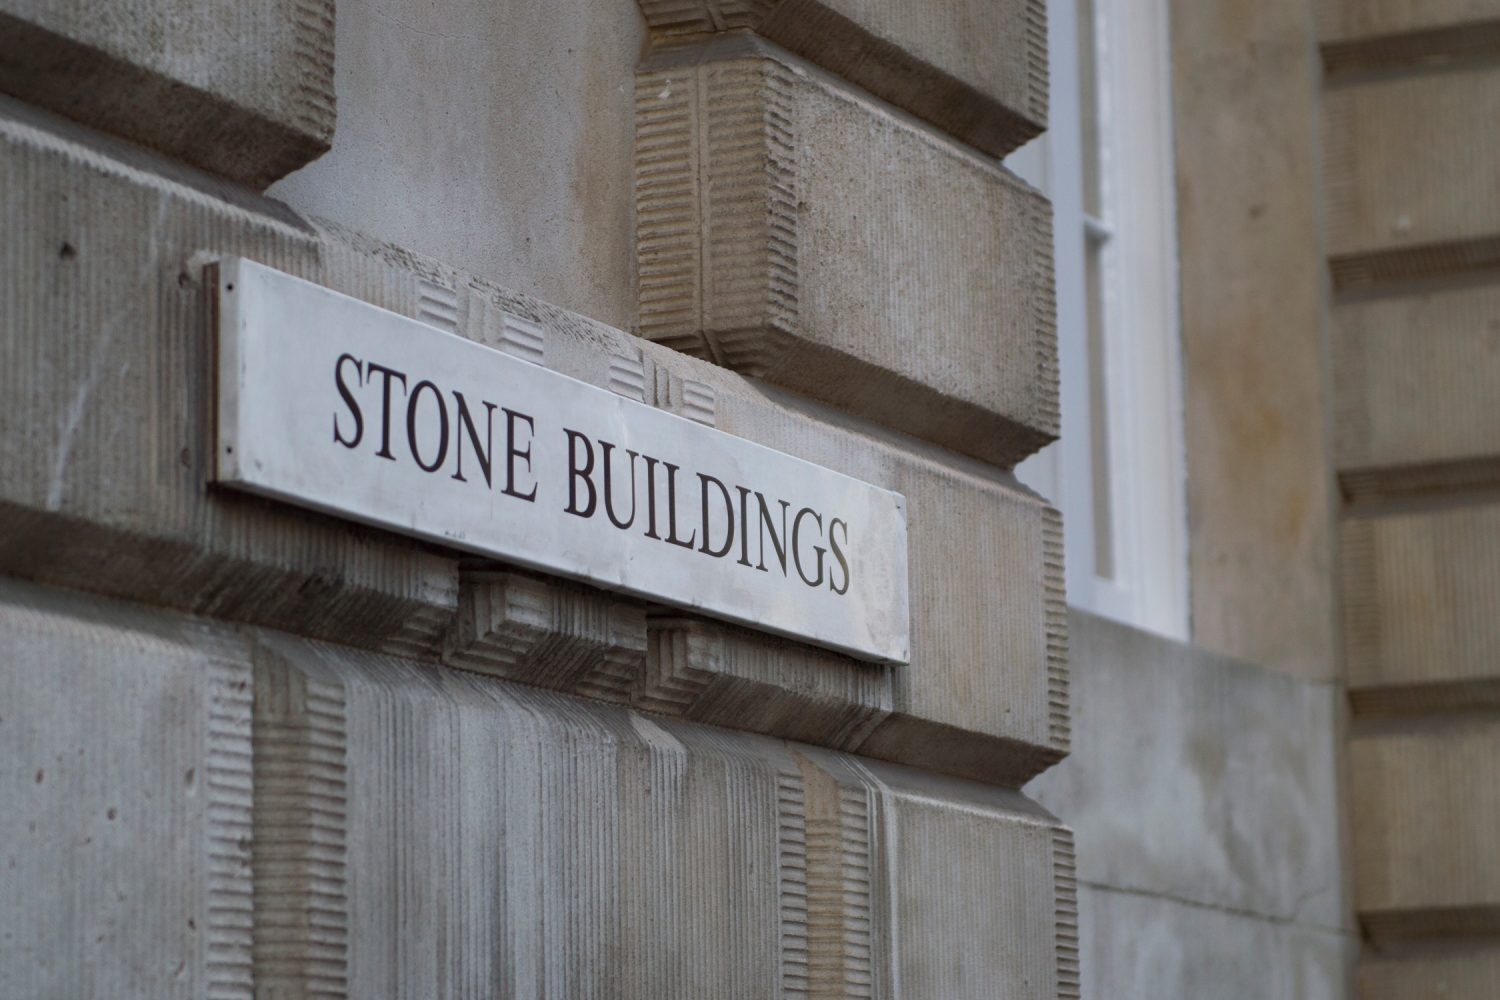 5 Stone Buildings - building sign